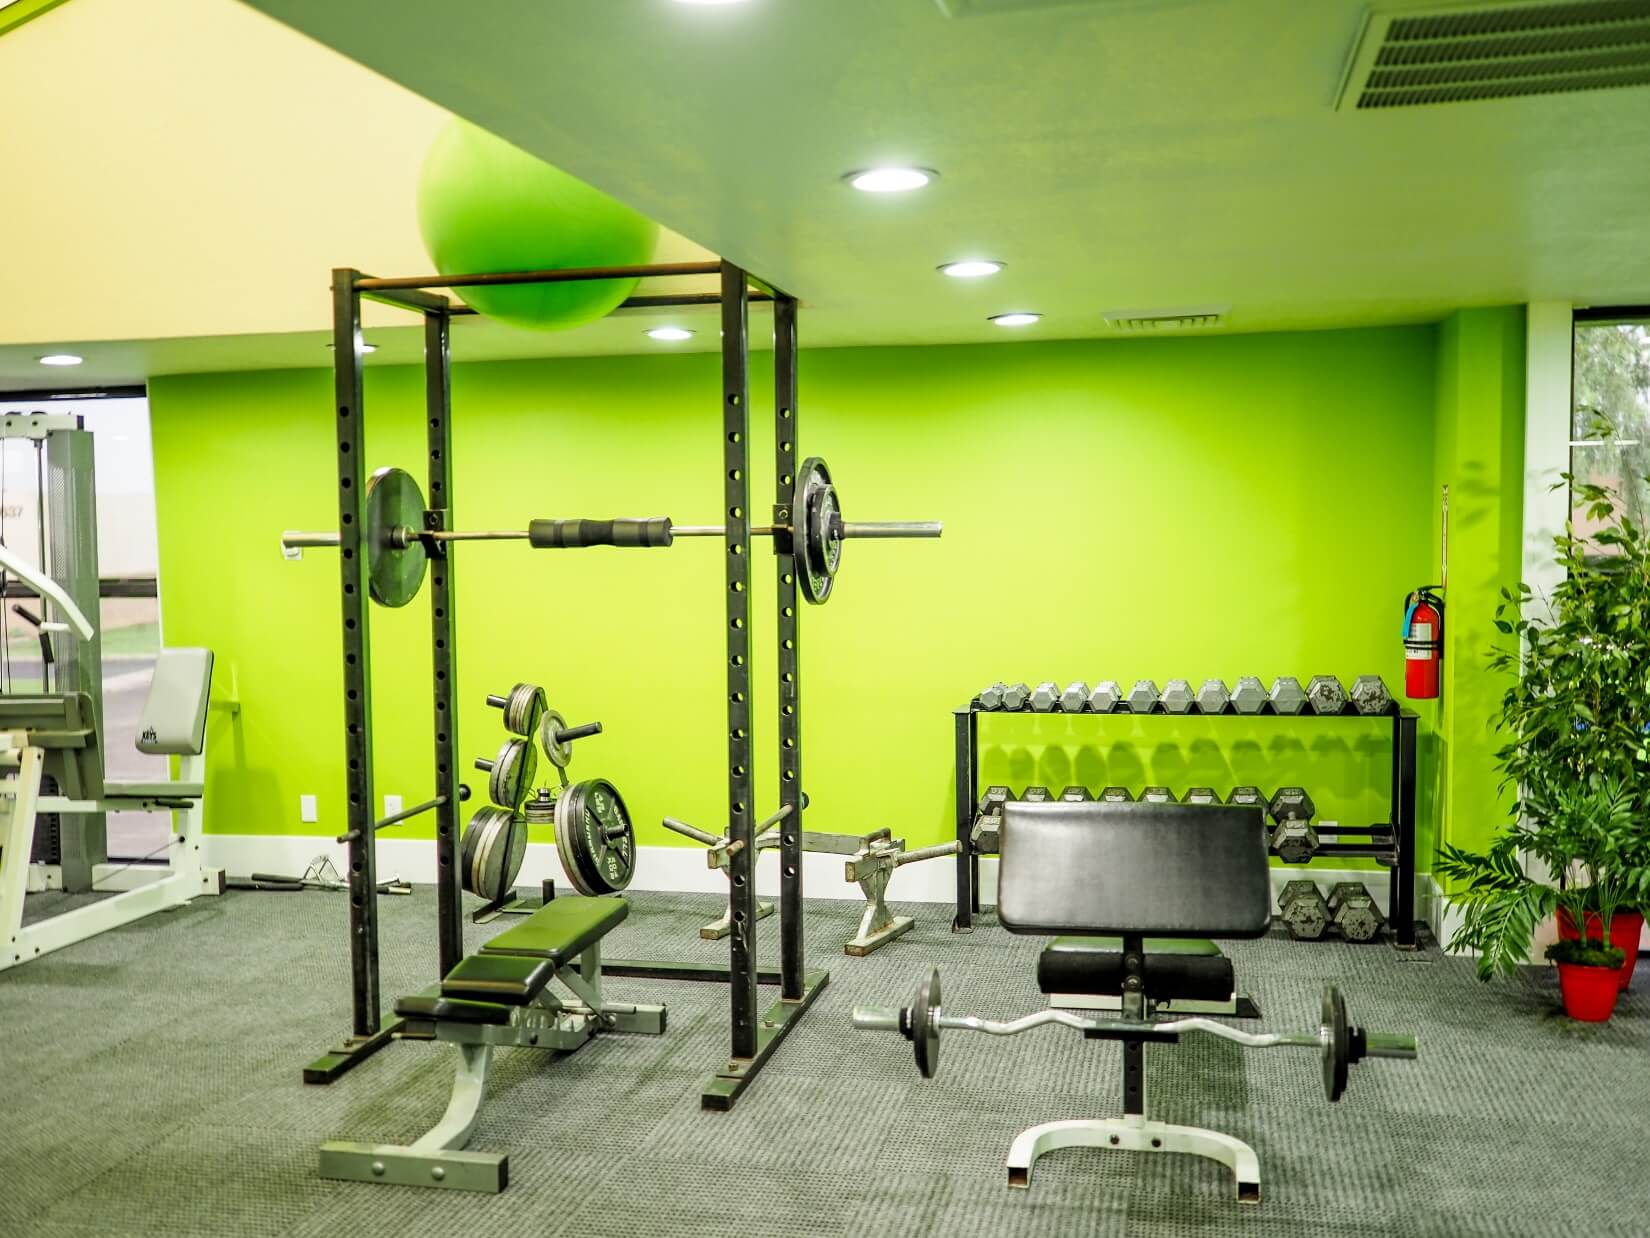 Image of the upstairs gym